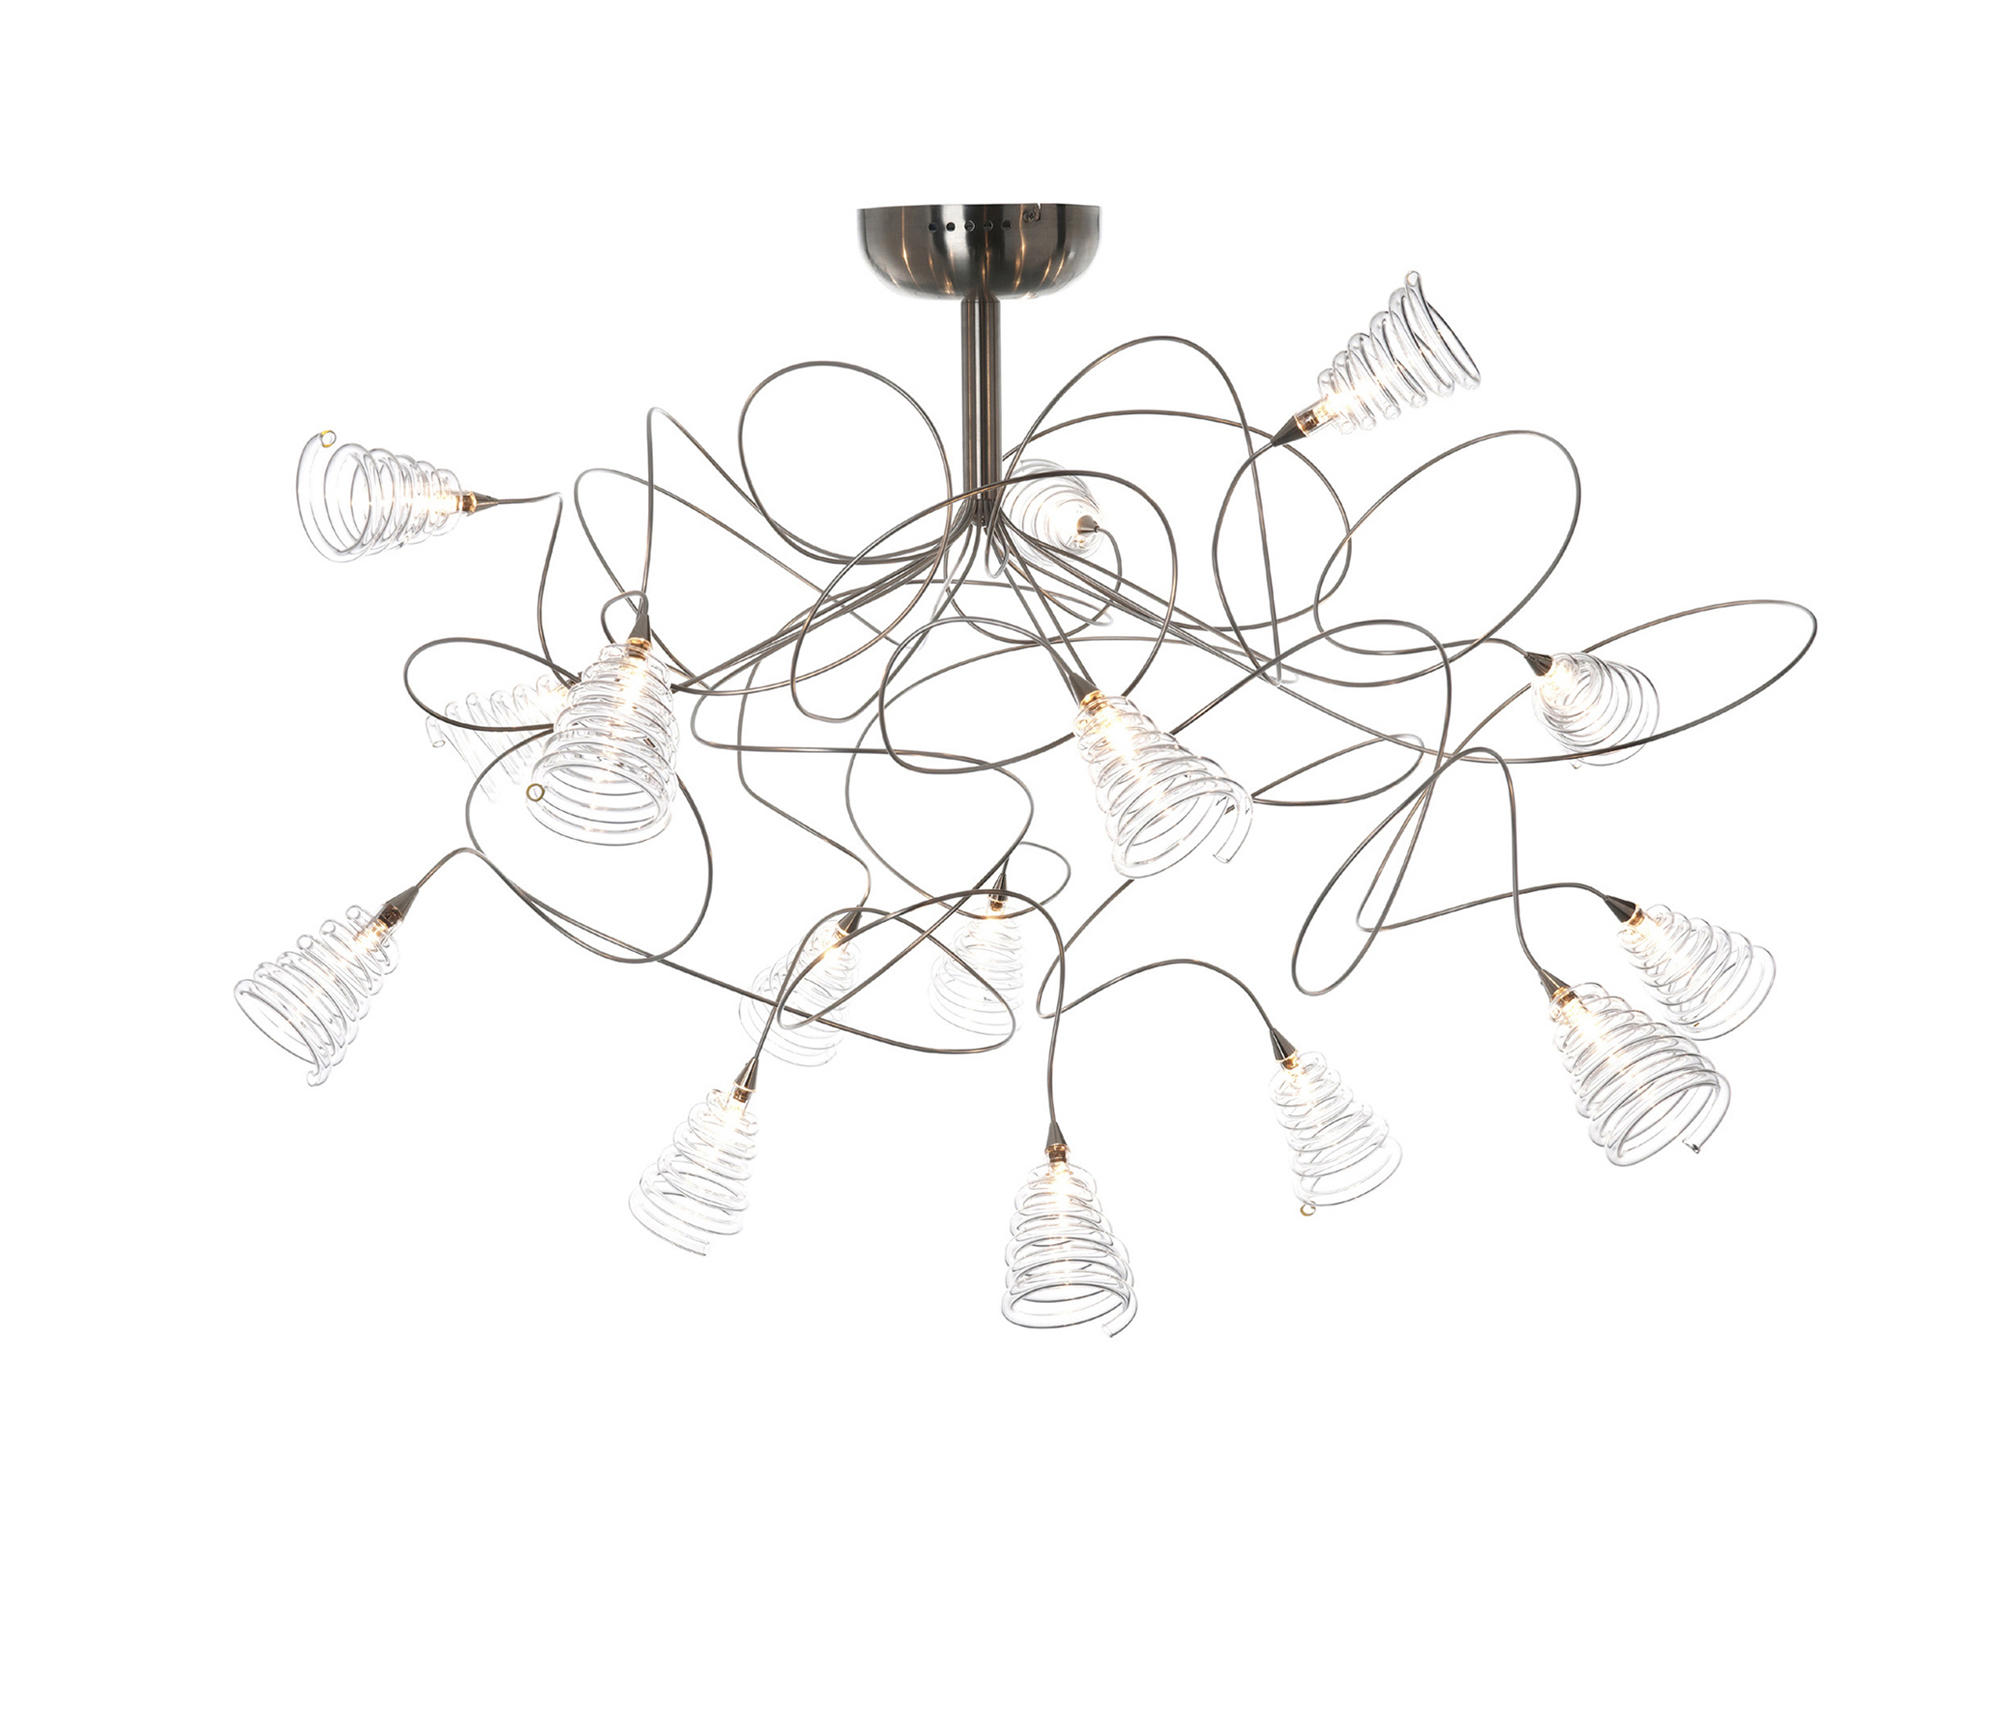 Spiral ceiling light 15 general lighting from harco loor architonic spiral ceiling light 15 by harco loor general lighting aloadofball Choice Image